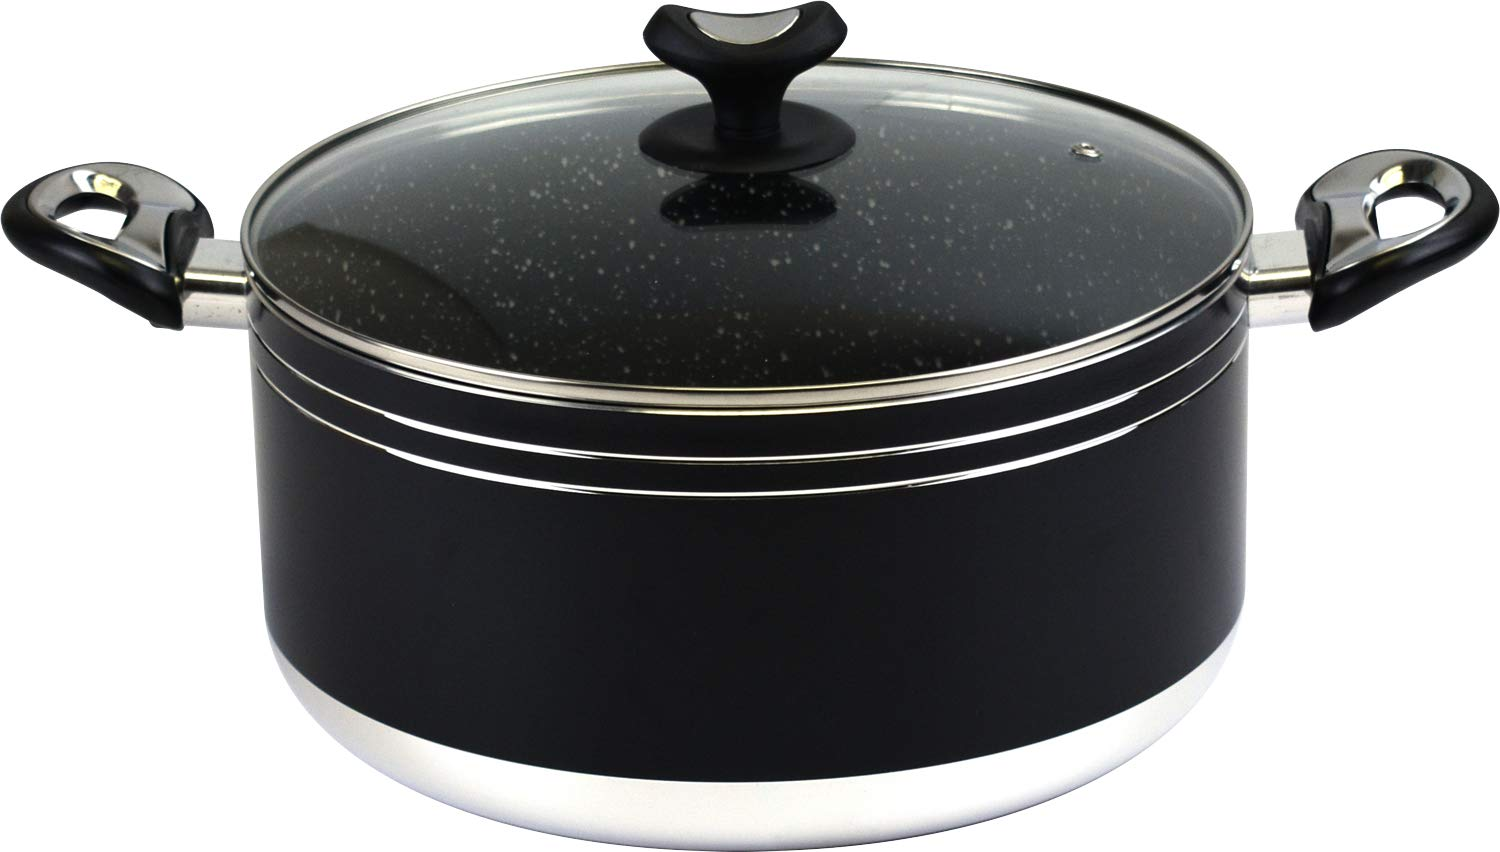 Marble Coated Non-Stick Casserole Pot with Tempered Glass Lid 28cm Sterling Ventures